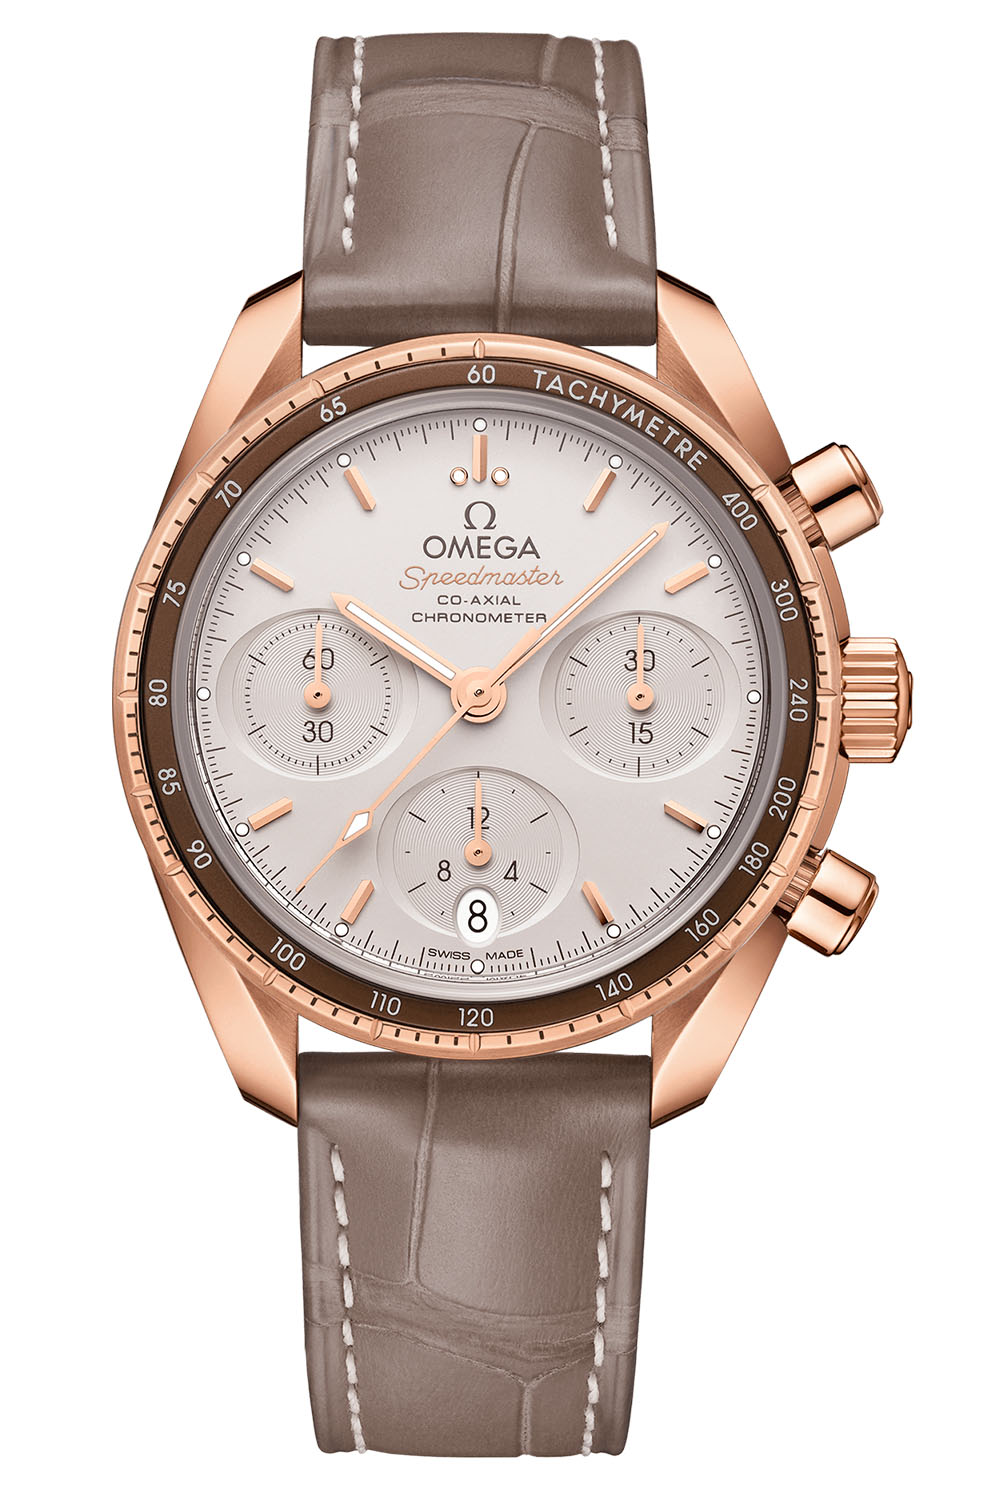 Omega Speedmaster 38mm Co-Axial Chronograph Full Gold 2020 - 1